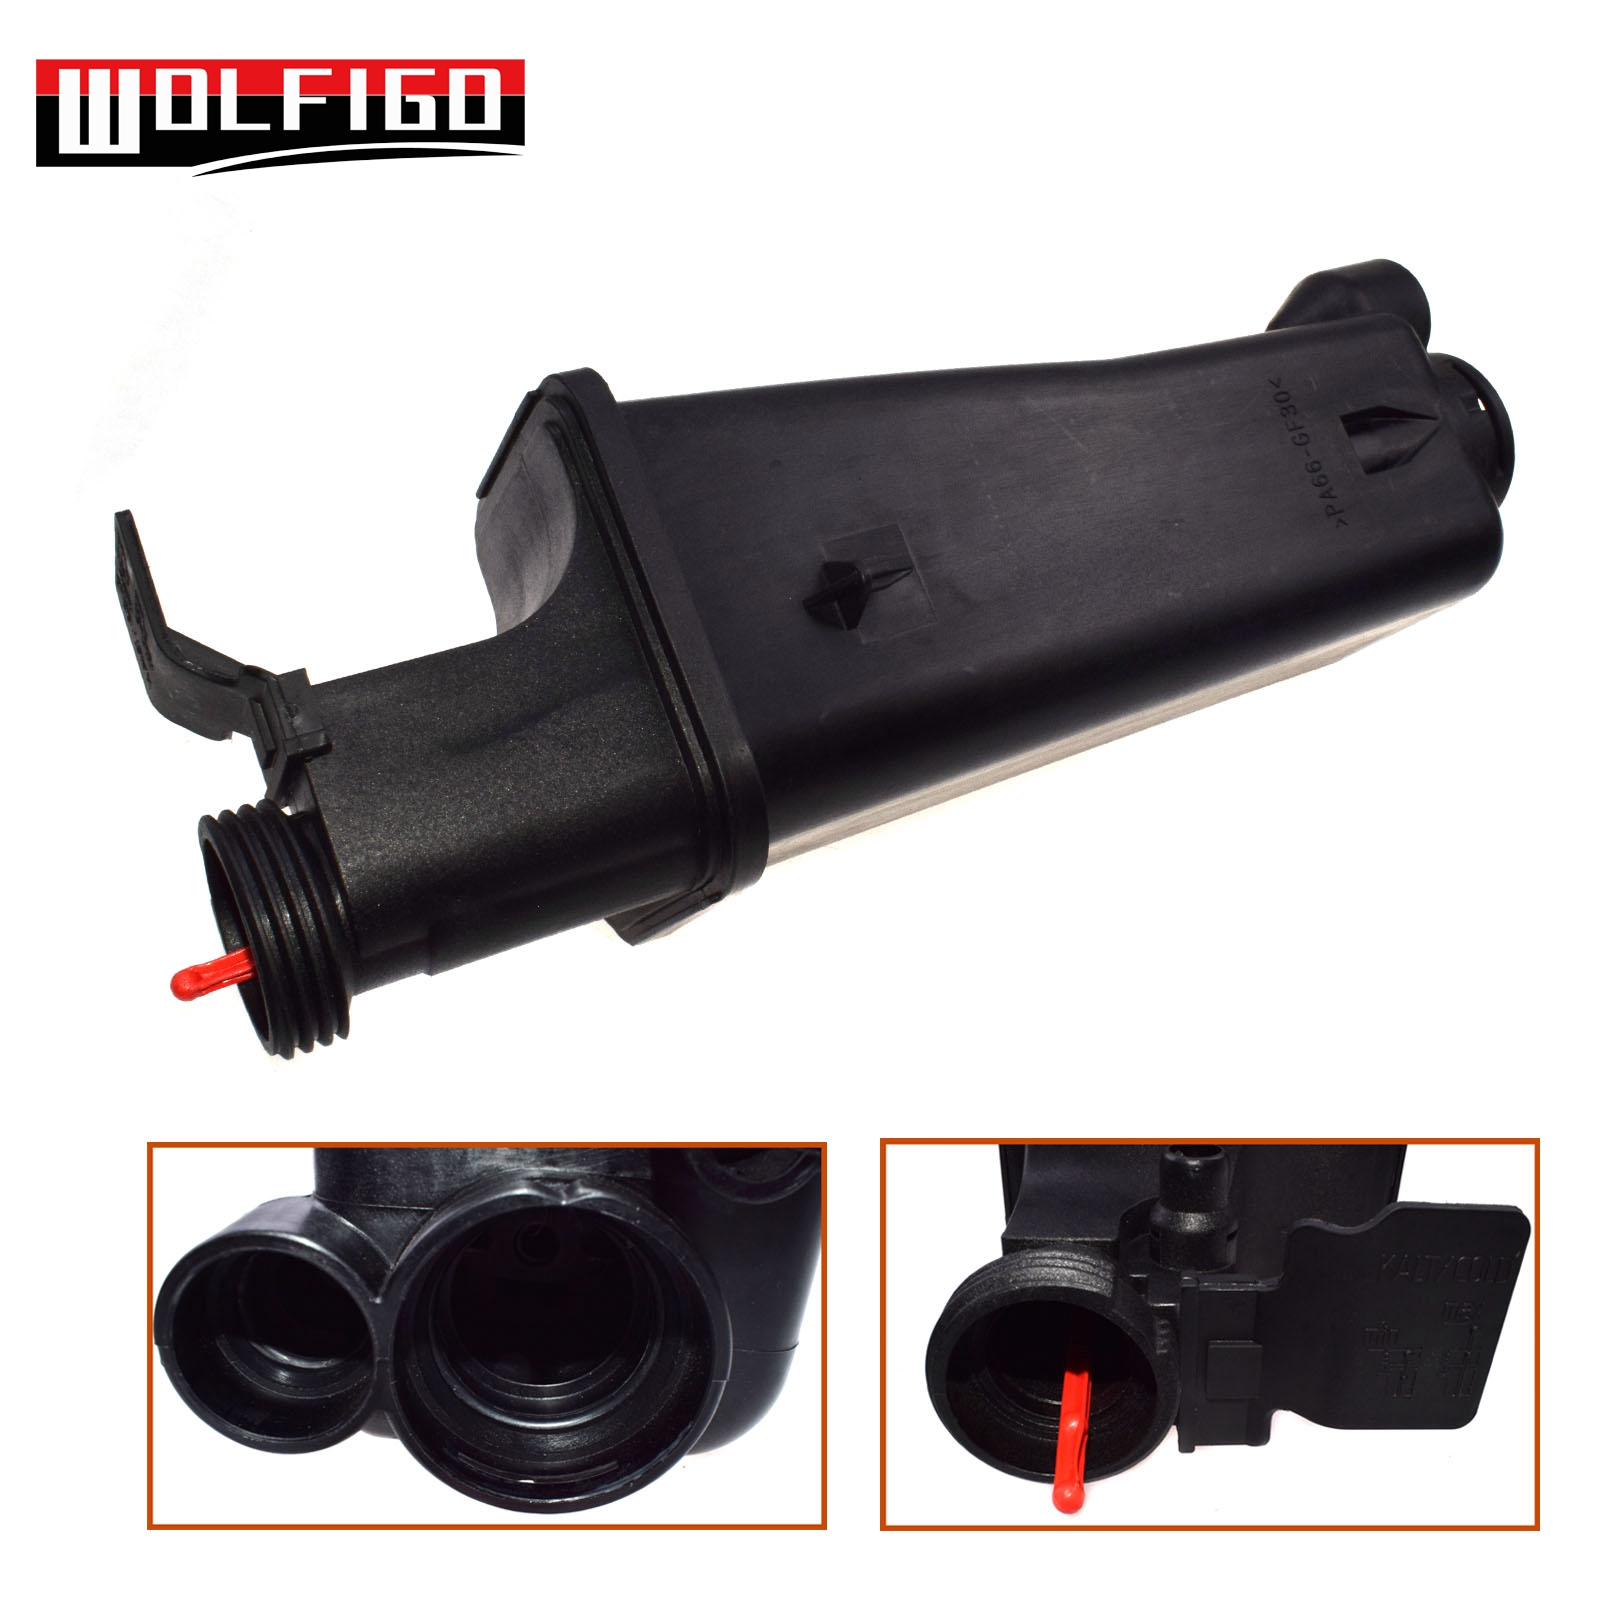 WOLFIGO Radiator Coolant Overflow Expansion Tank Bottle Reservoir with or without Cap 17137787039,17111436413,17132247553 New image